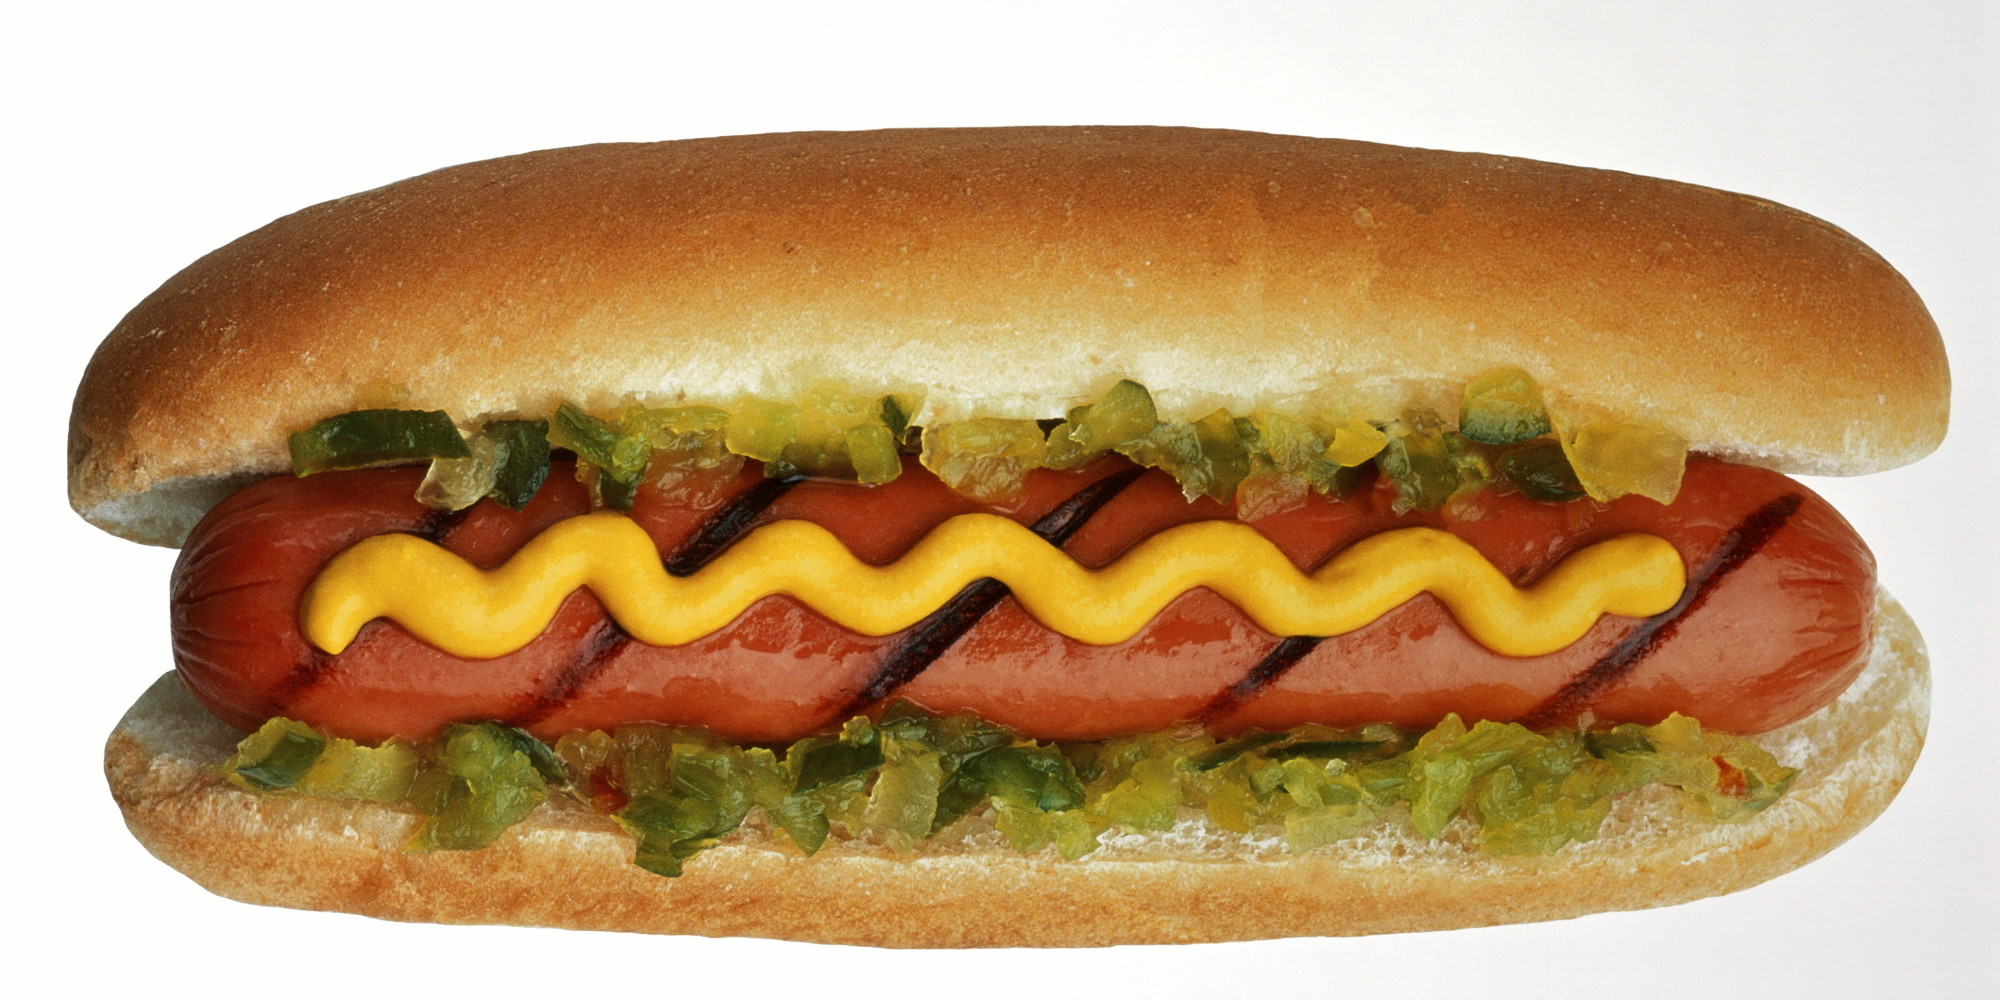 Types Of Sausages For Hot Dogs